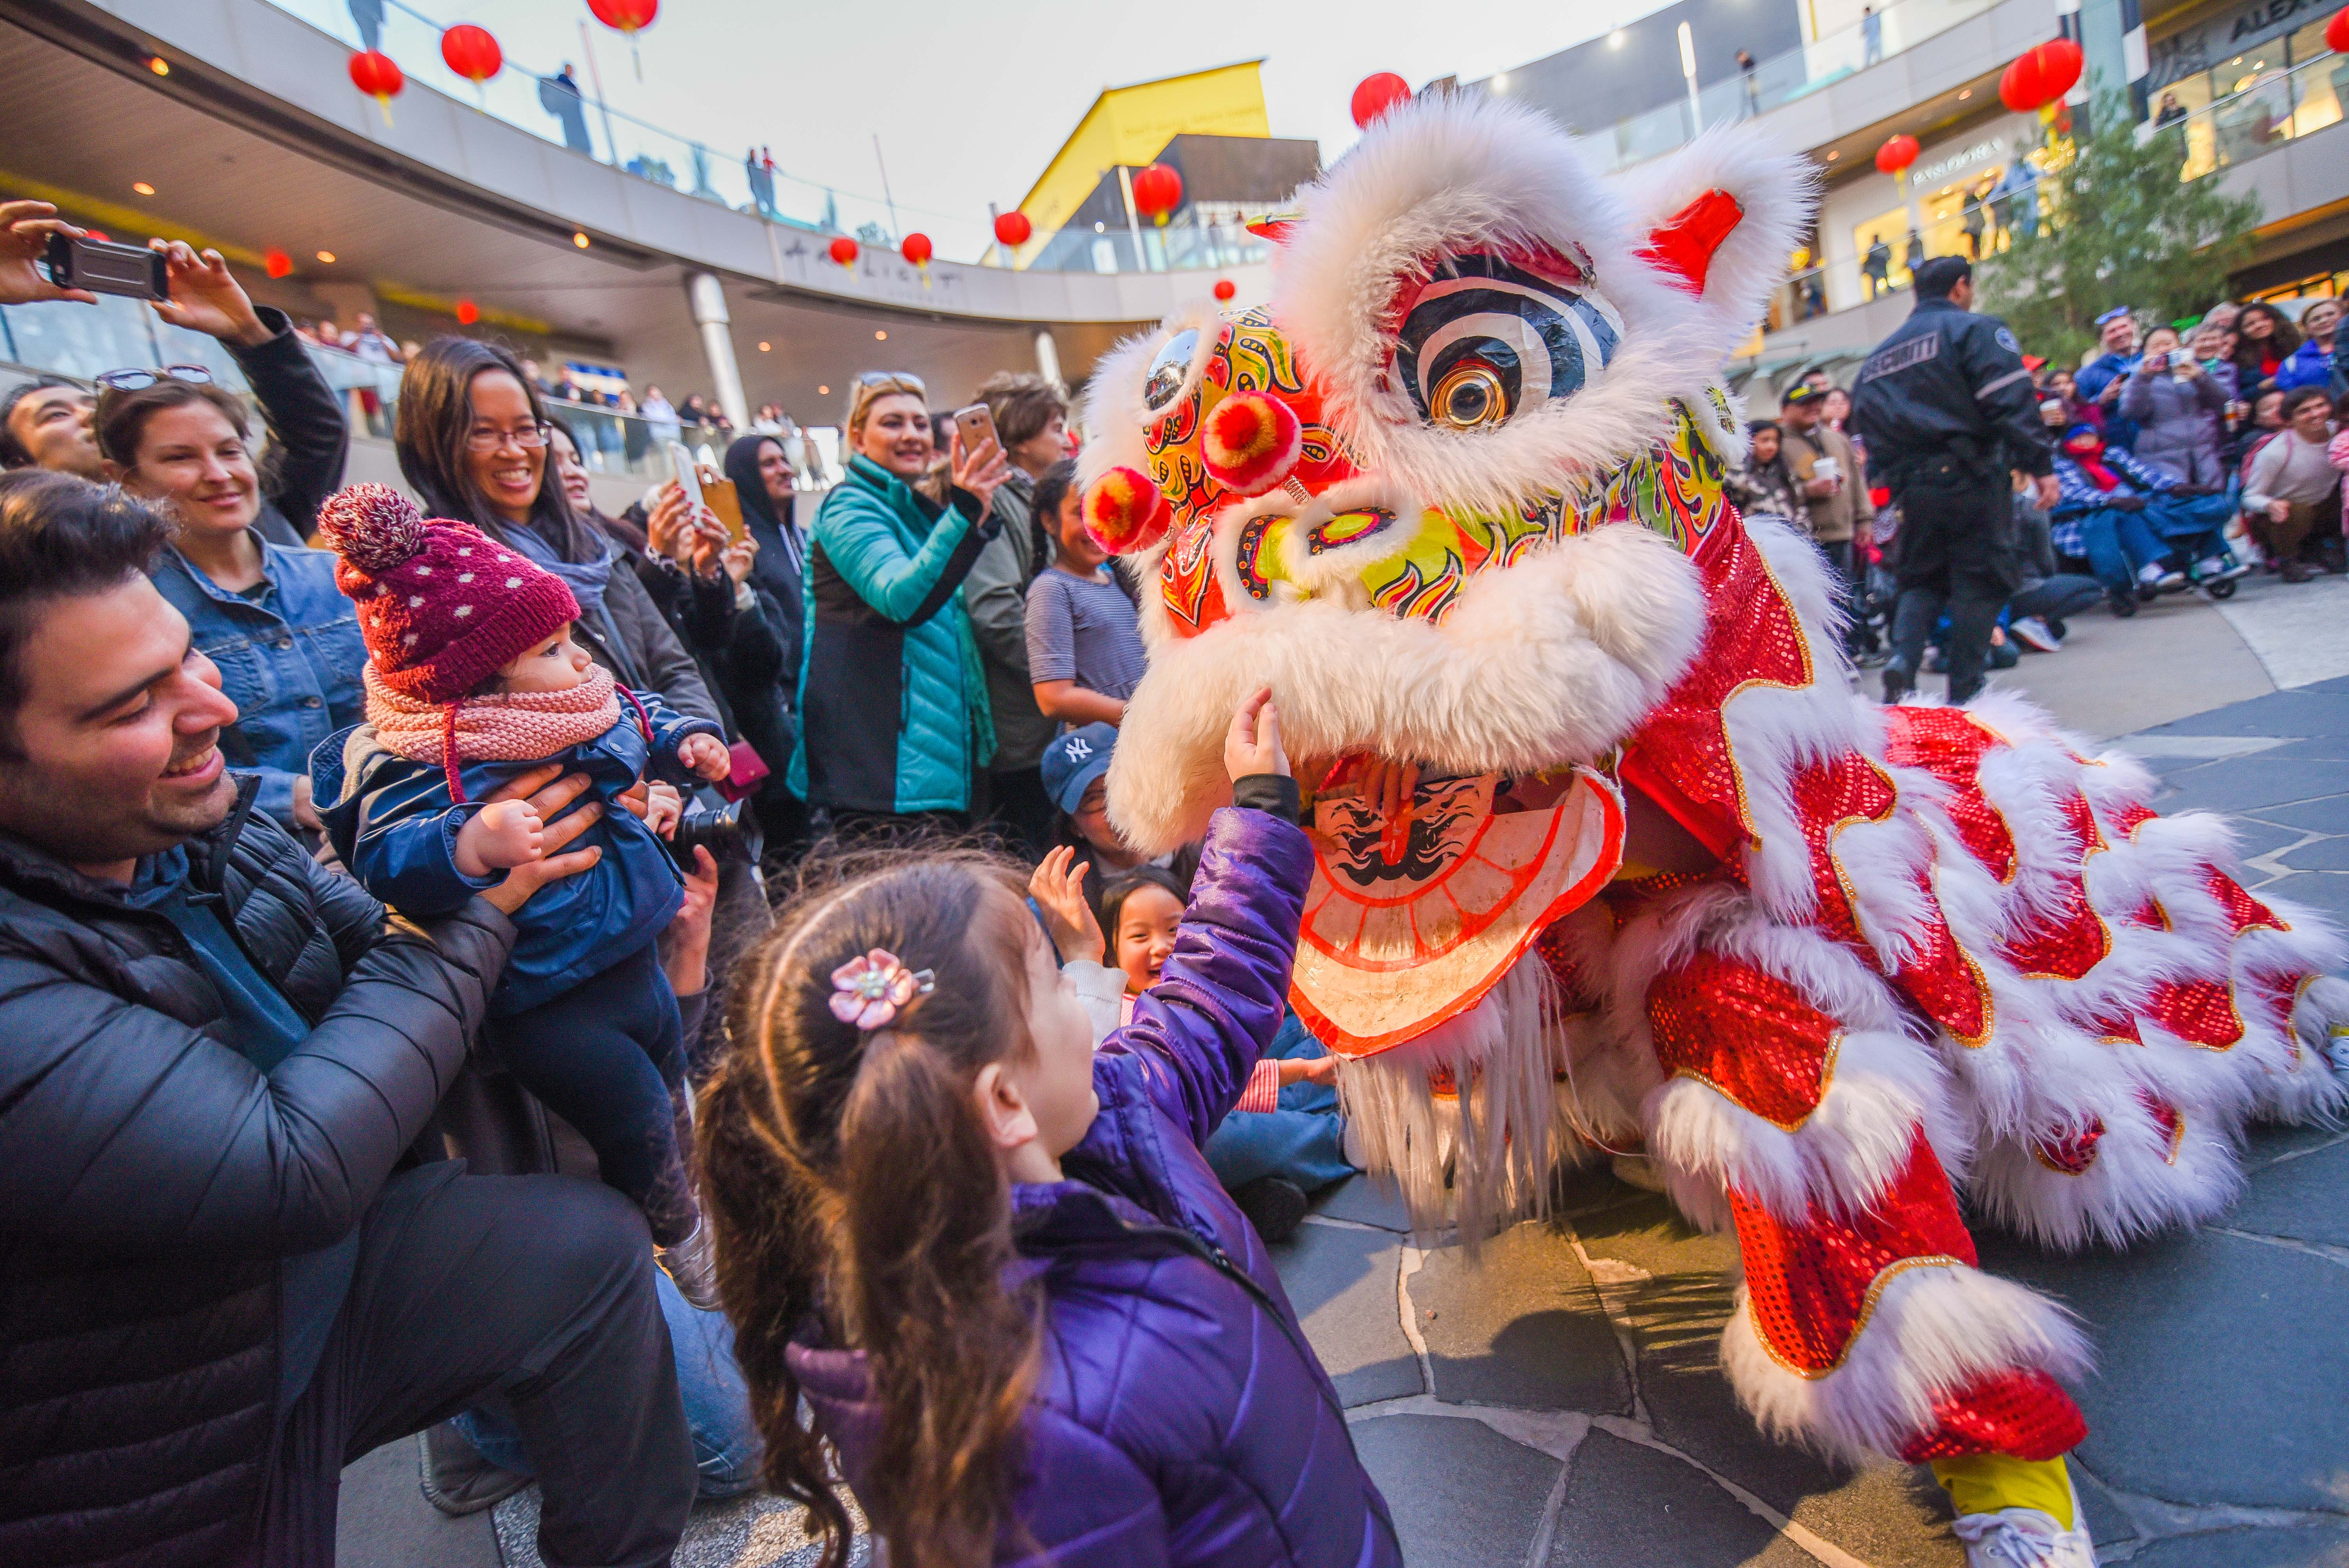 dragon performer approaching crowd during Lunar New Year celebration